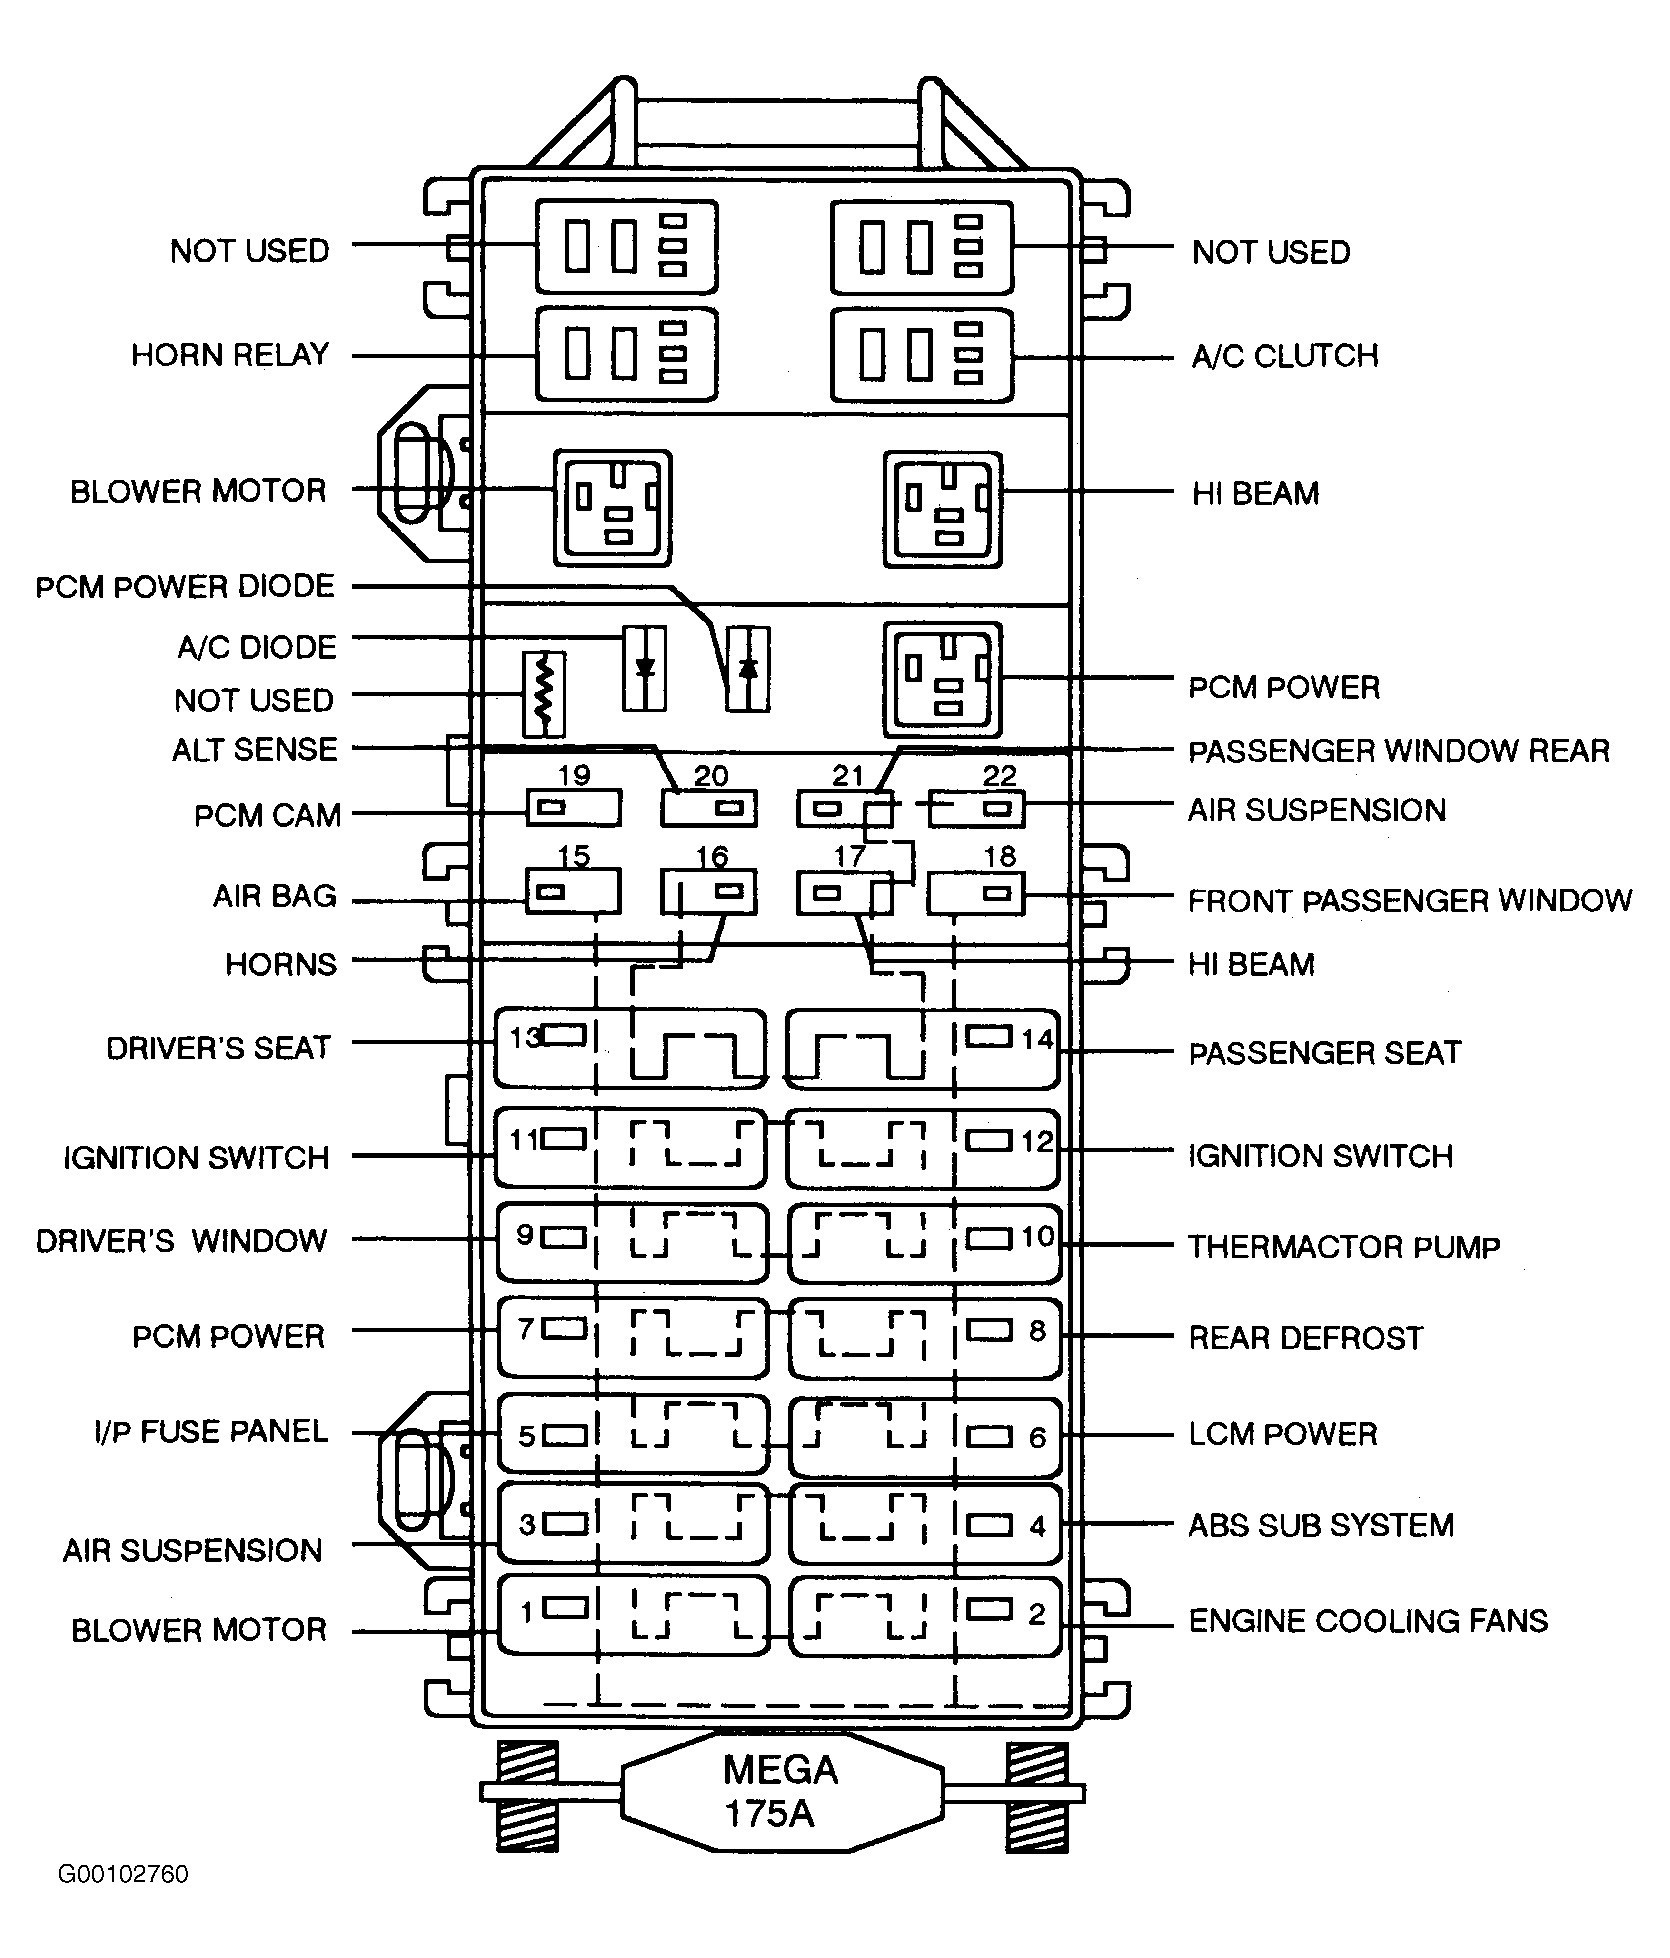 Maf Sensor Wiring Diagram On Wiring Diagram For 2005